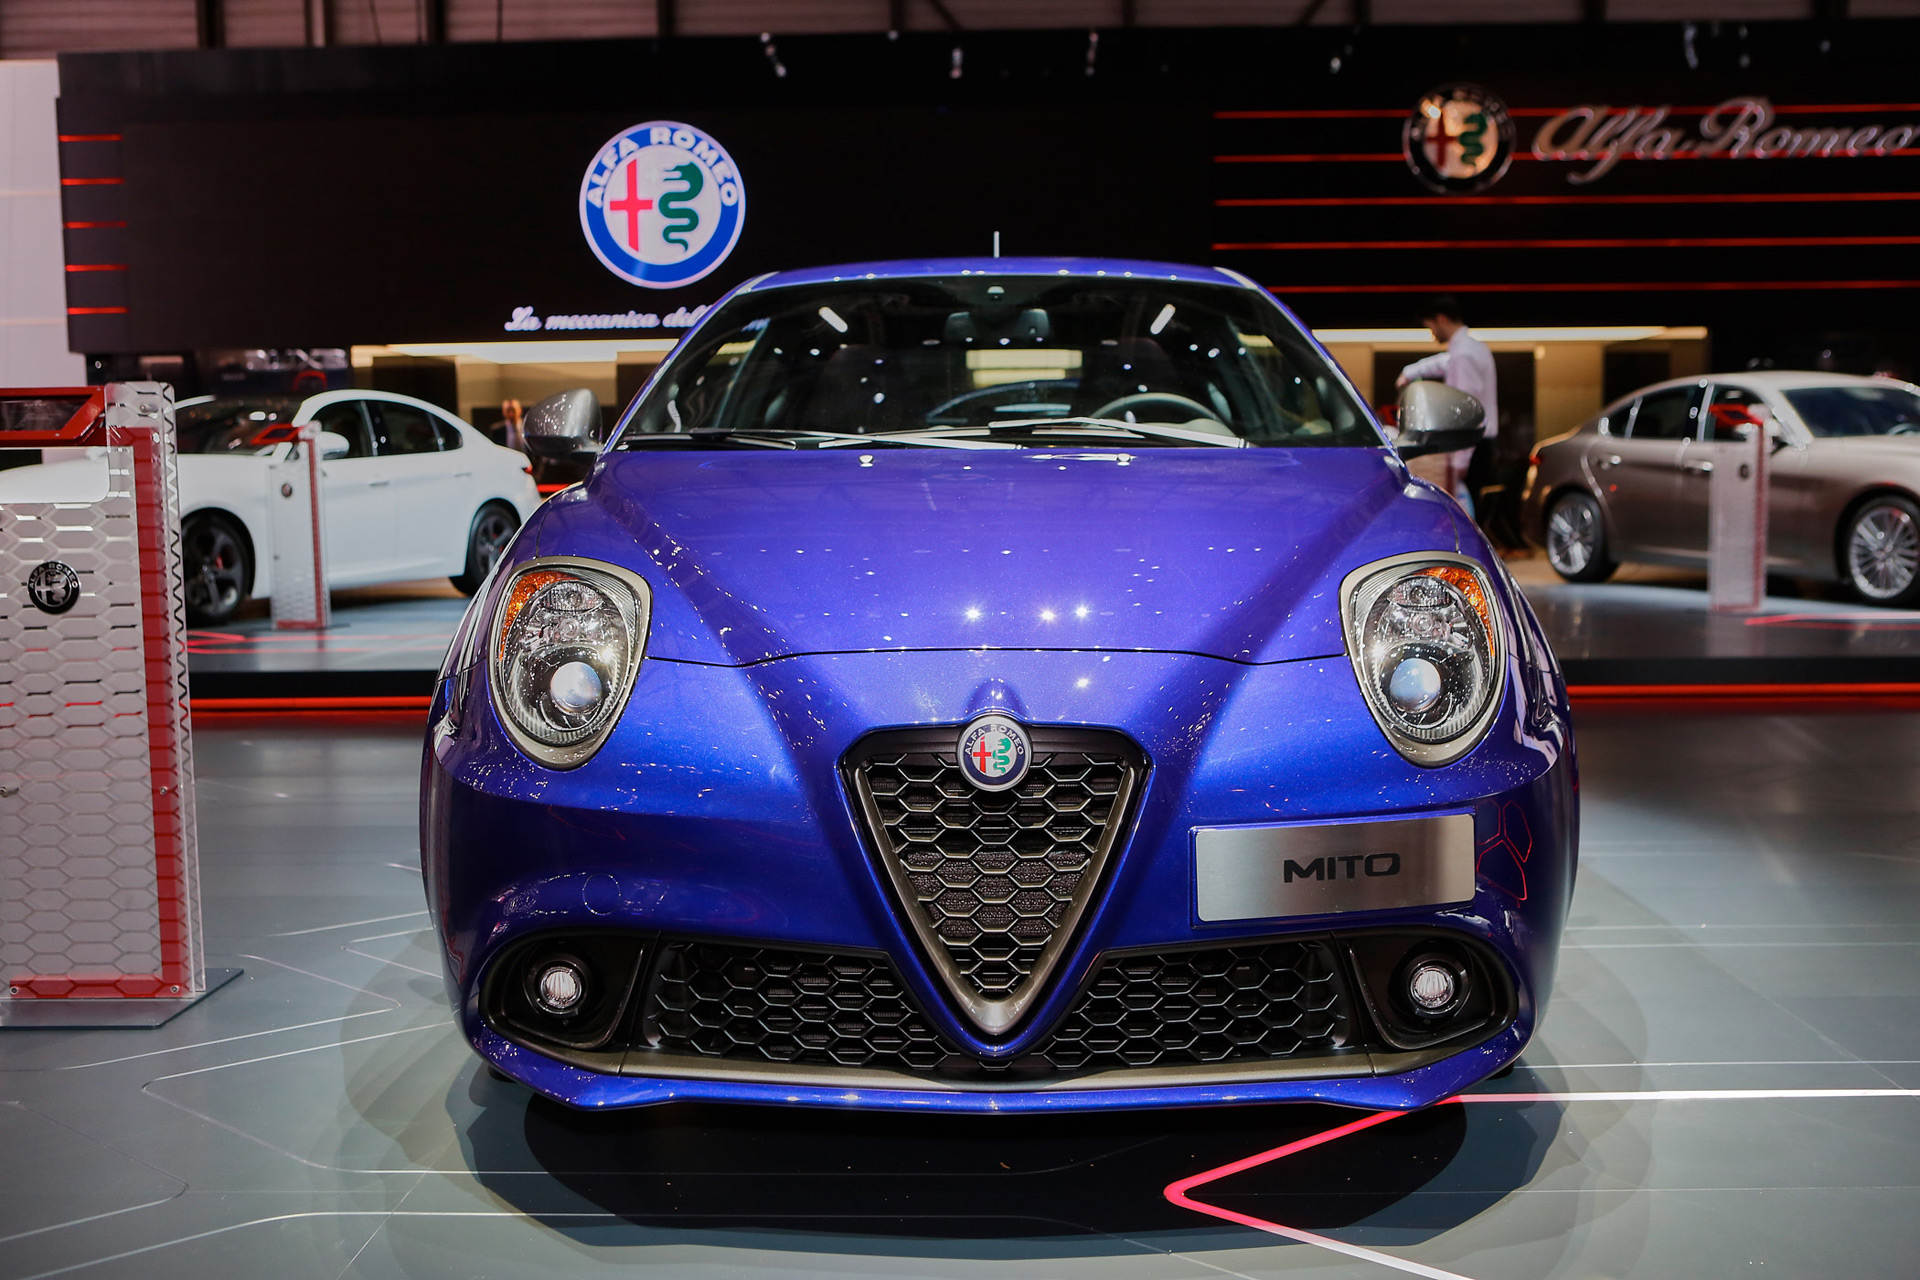 Gm Fuel Cell >> 2017 Alfa Romeo Mito debuts with minor updates